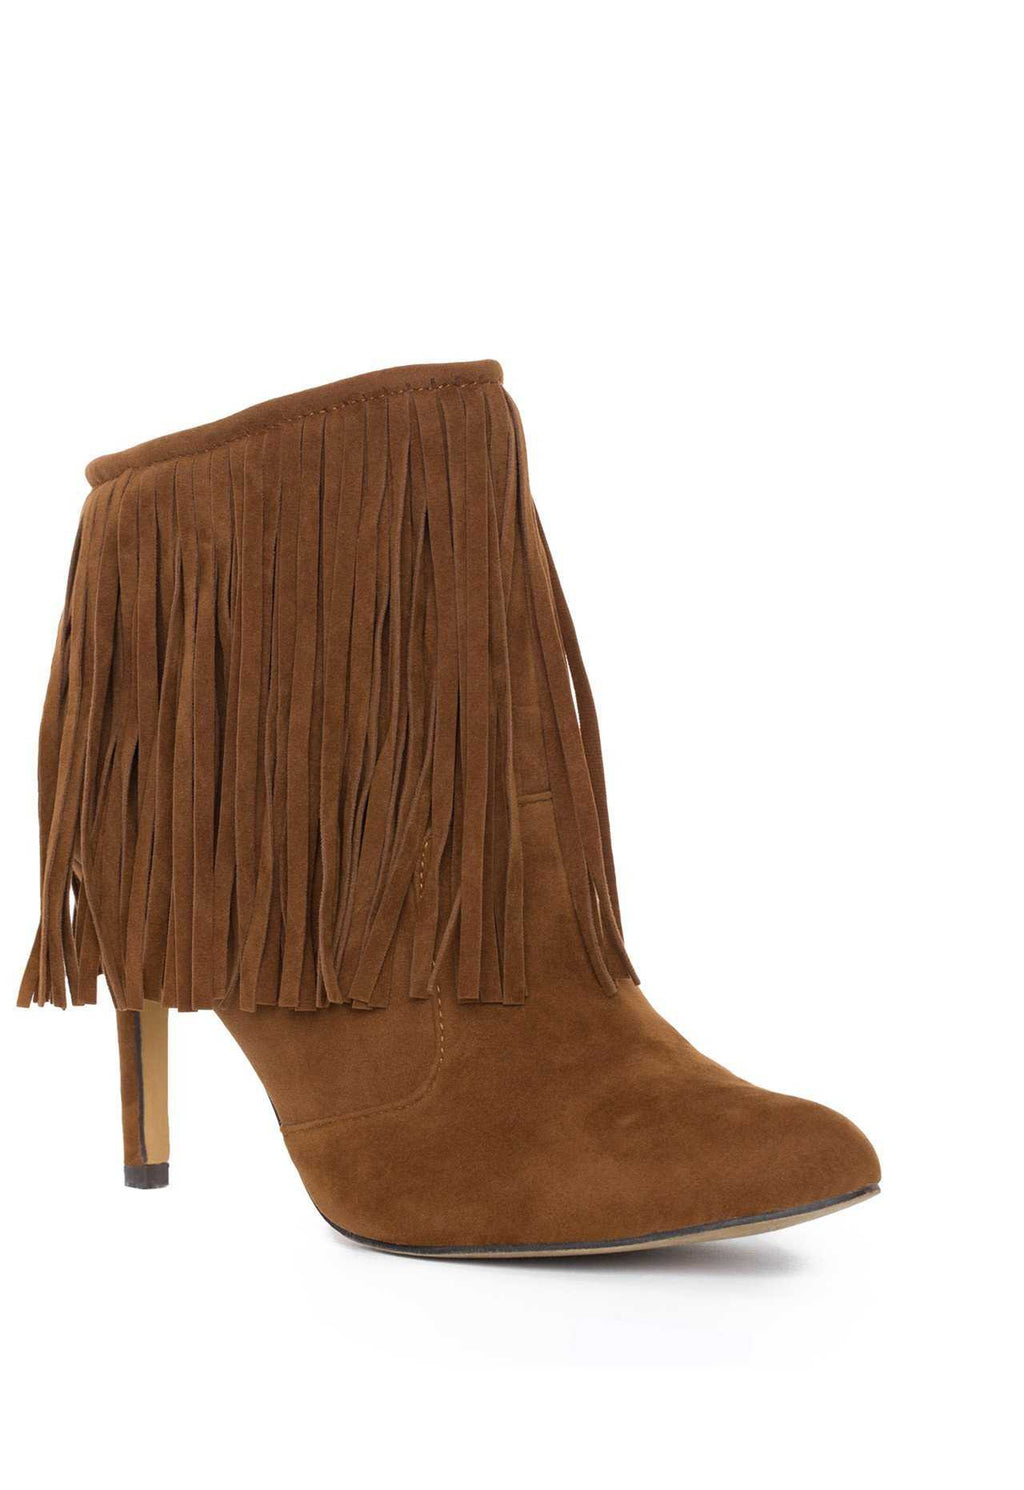 Booties - Wild West Fringe Booties - Tan